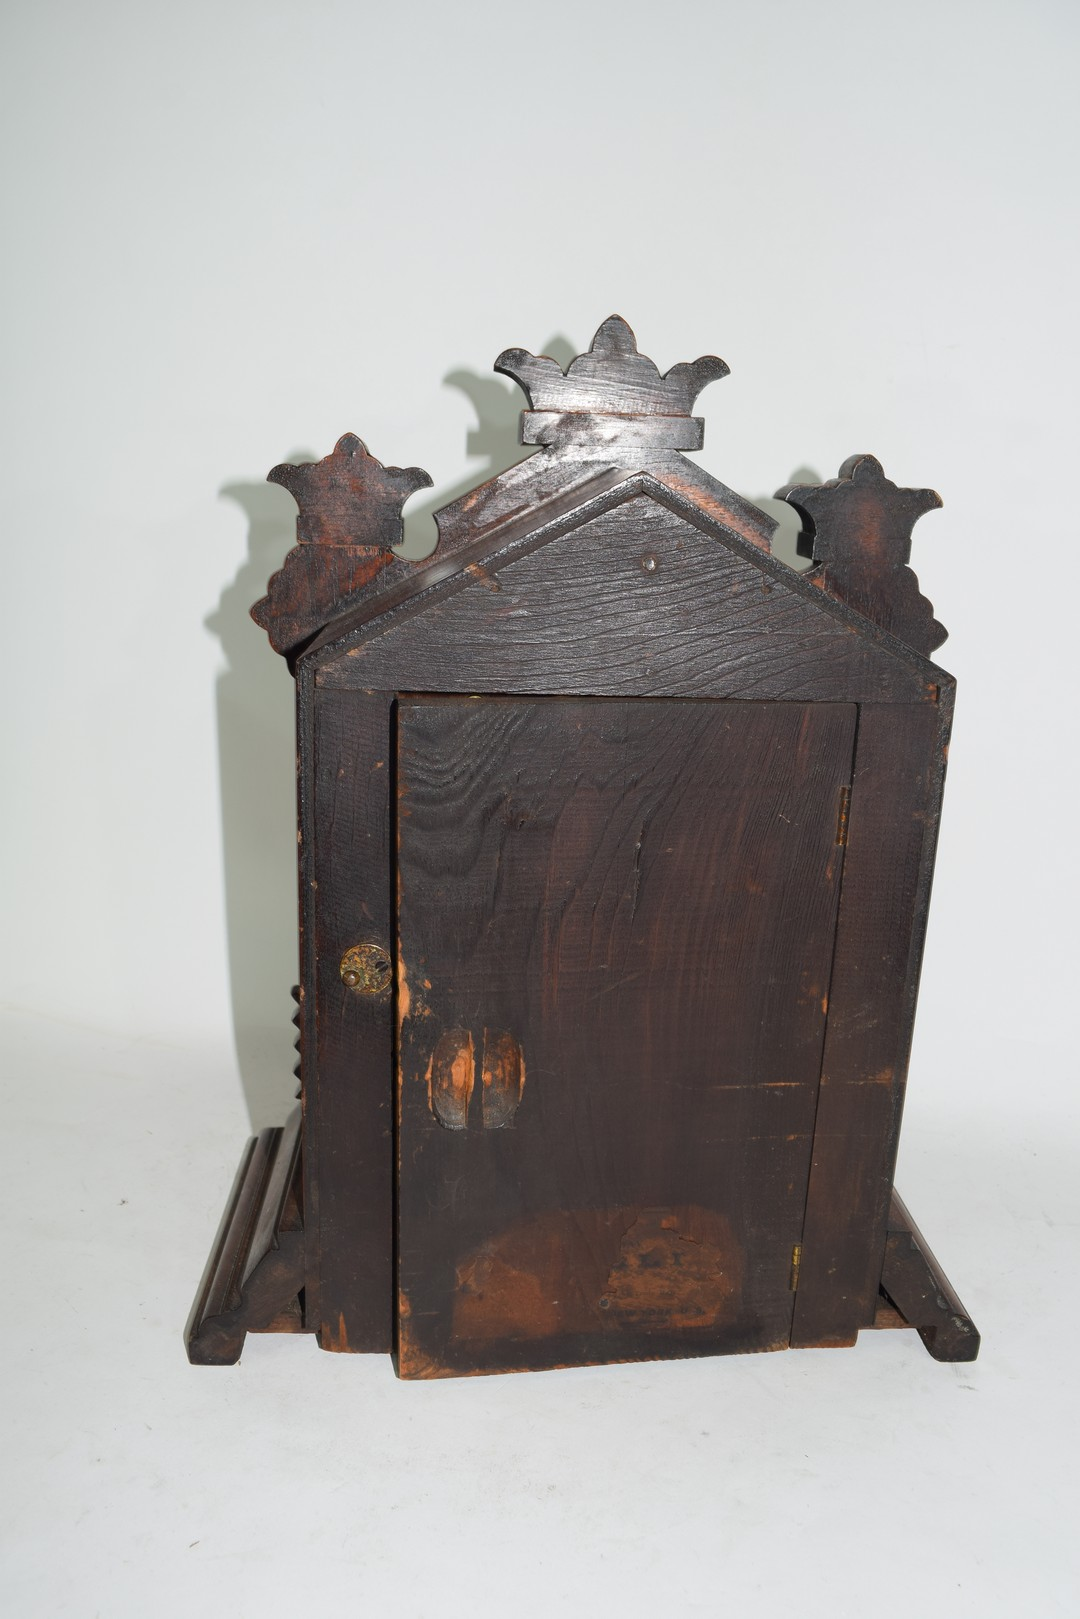 Late 19th century mantel clock by Ansona of New York - Image 4 of 6